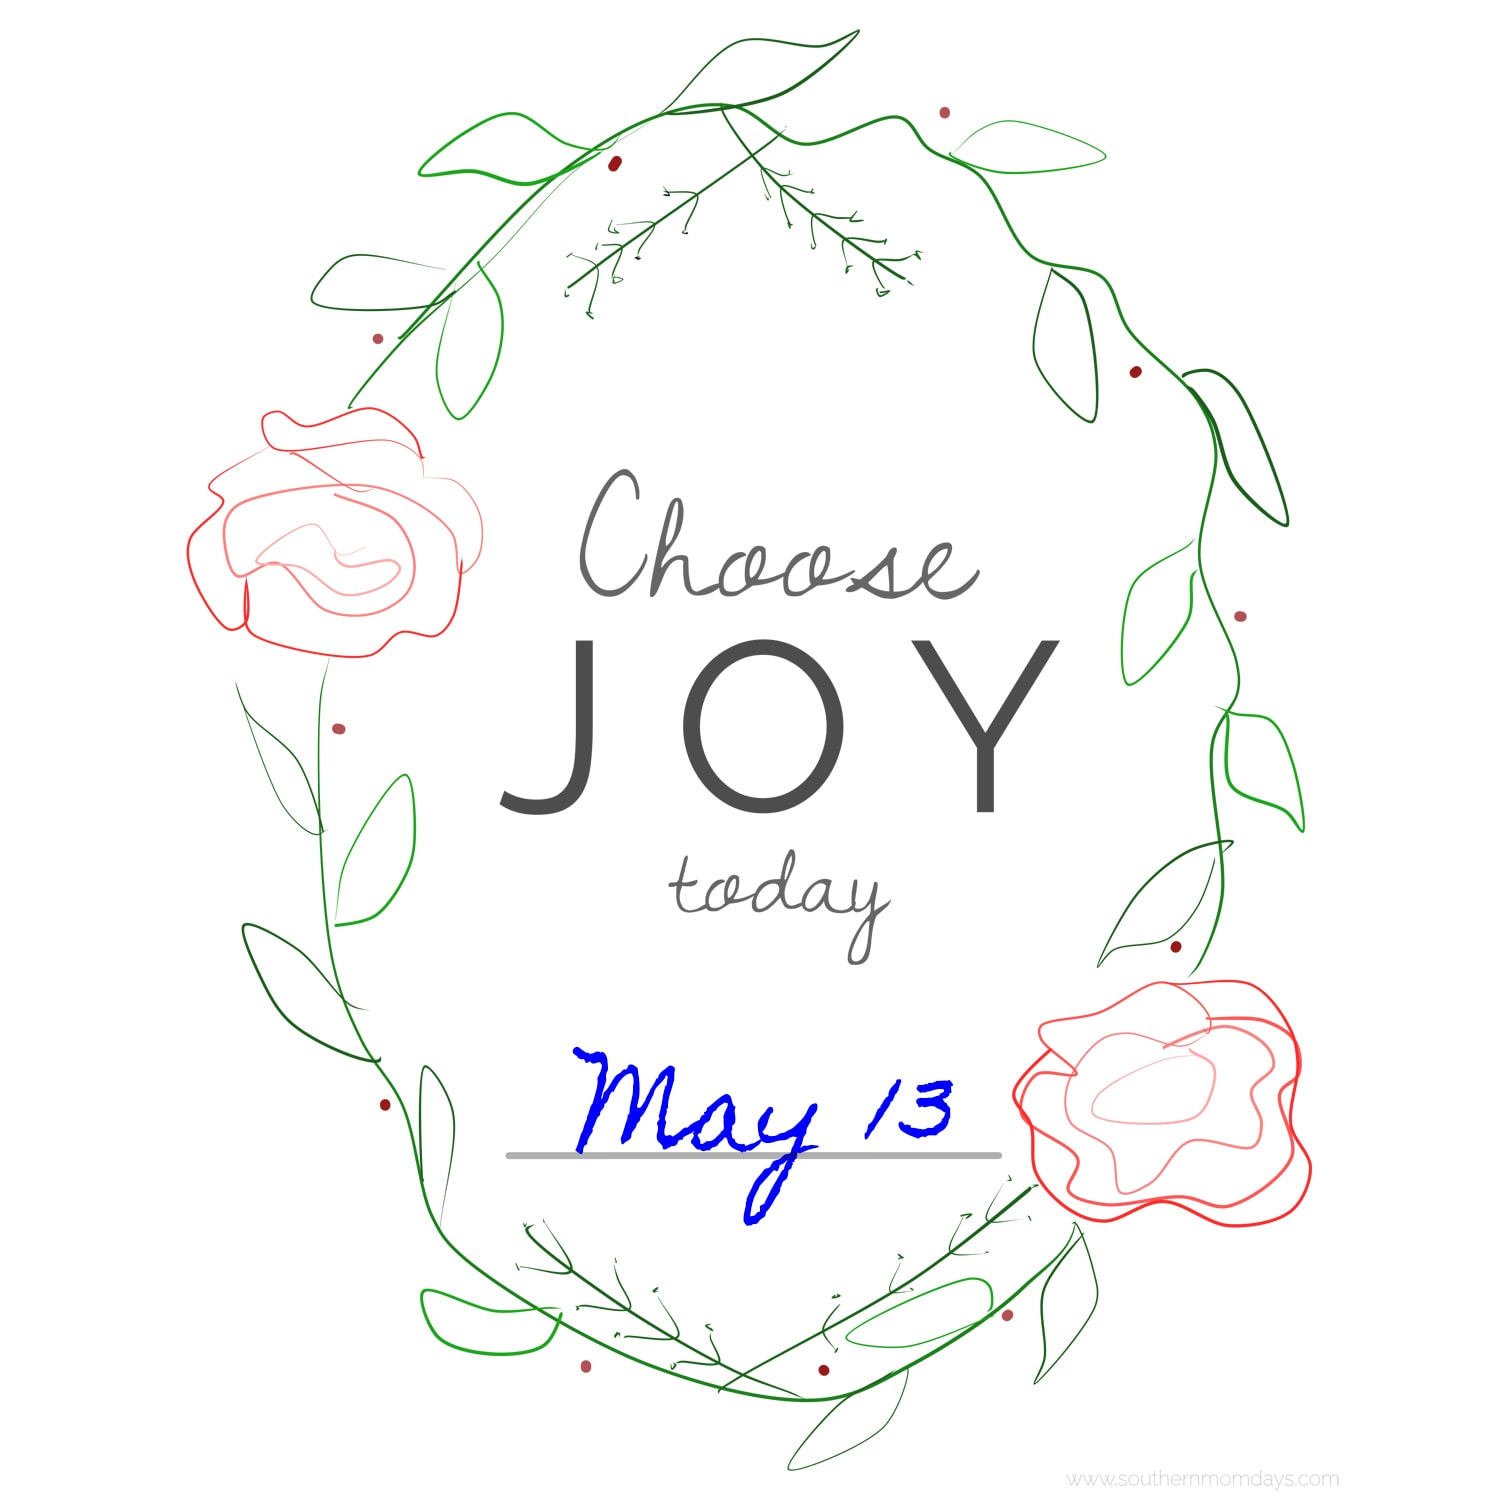 Choose Joy Today free printable date sign for Mother's Day by Southern Momdays